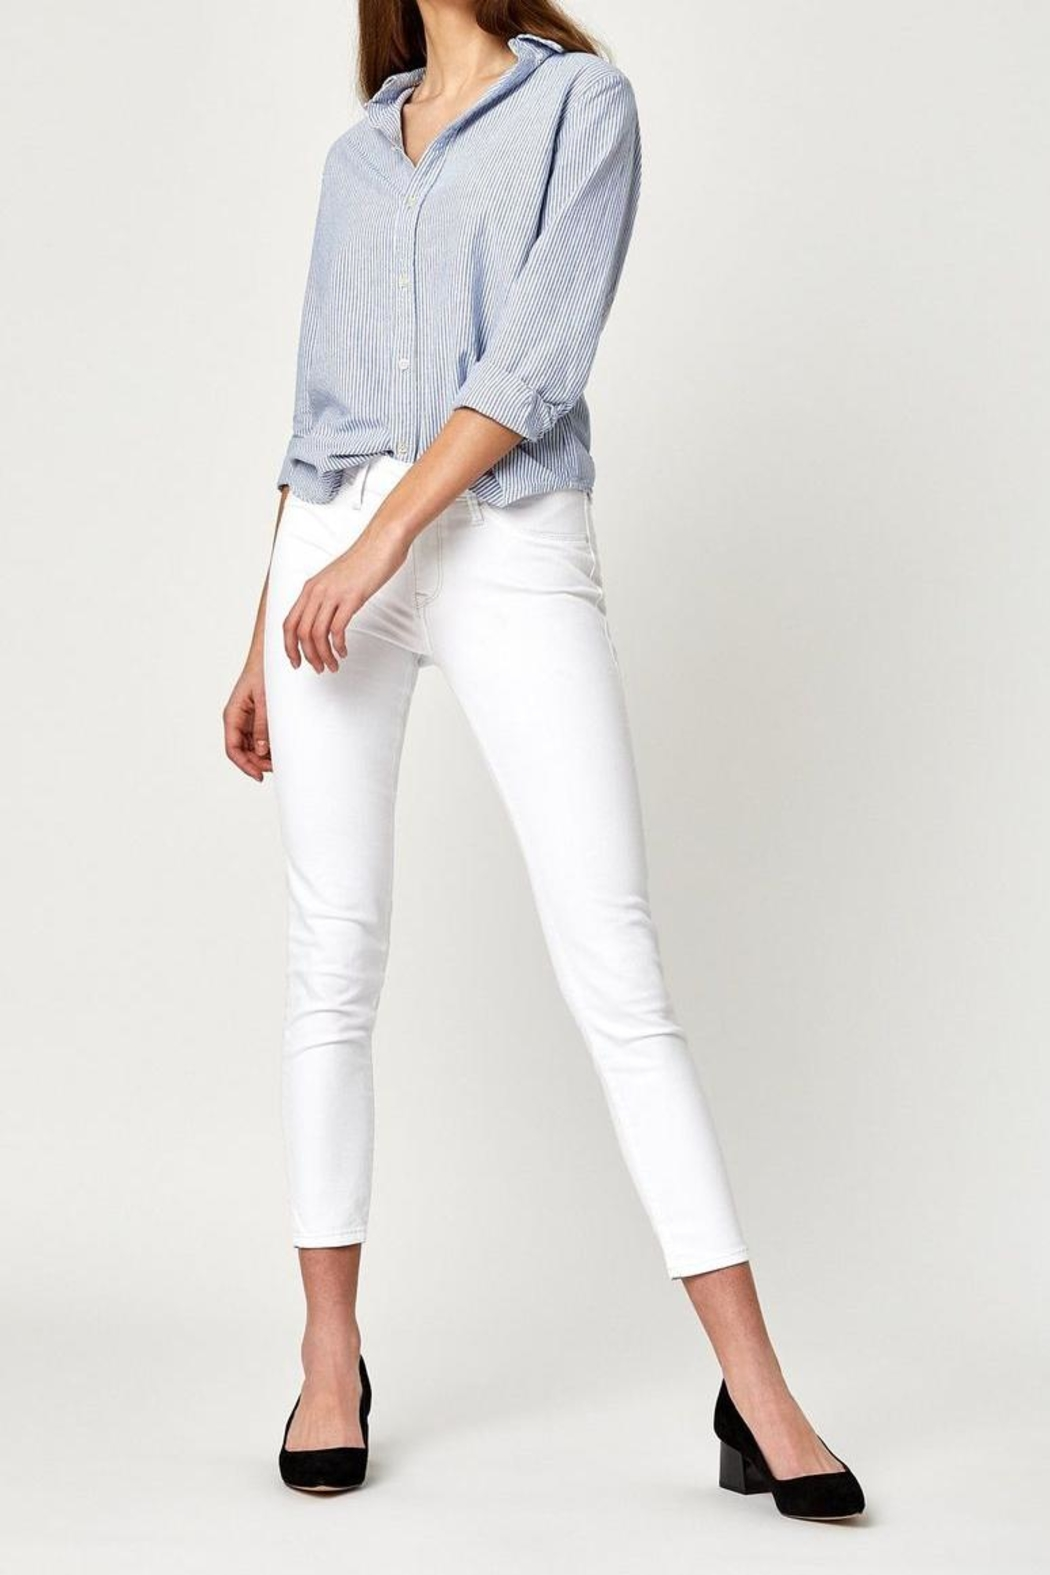 Mavi Jeans White Ankle Crop - Front Cropped Image